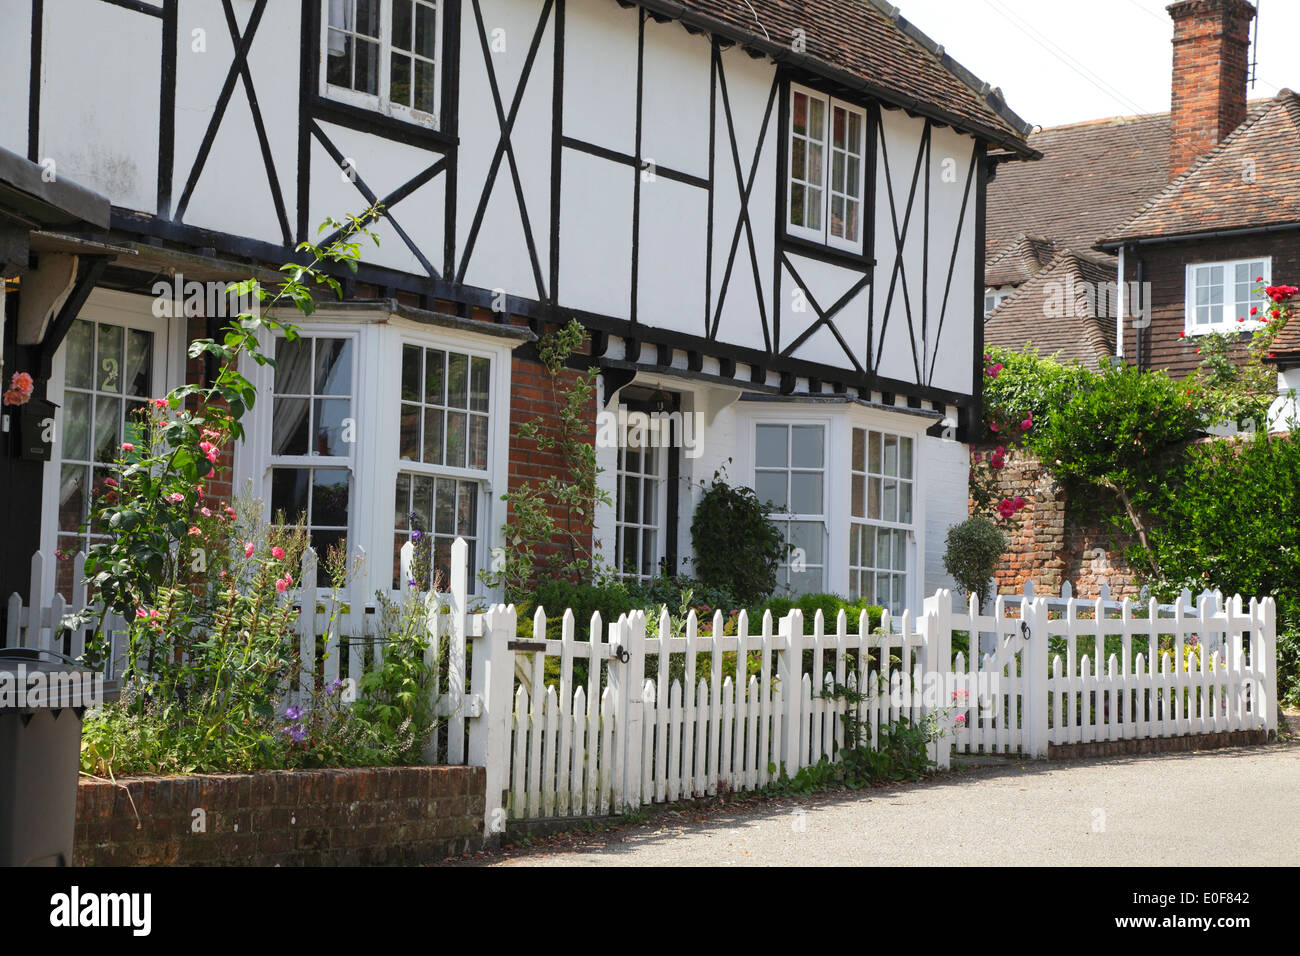 Timbered House With White Picket Fence In Chilham Village